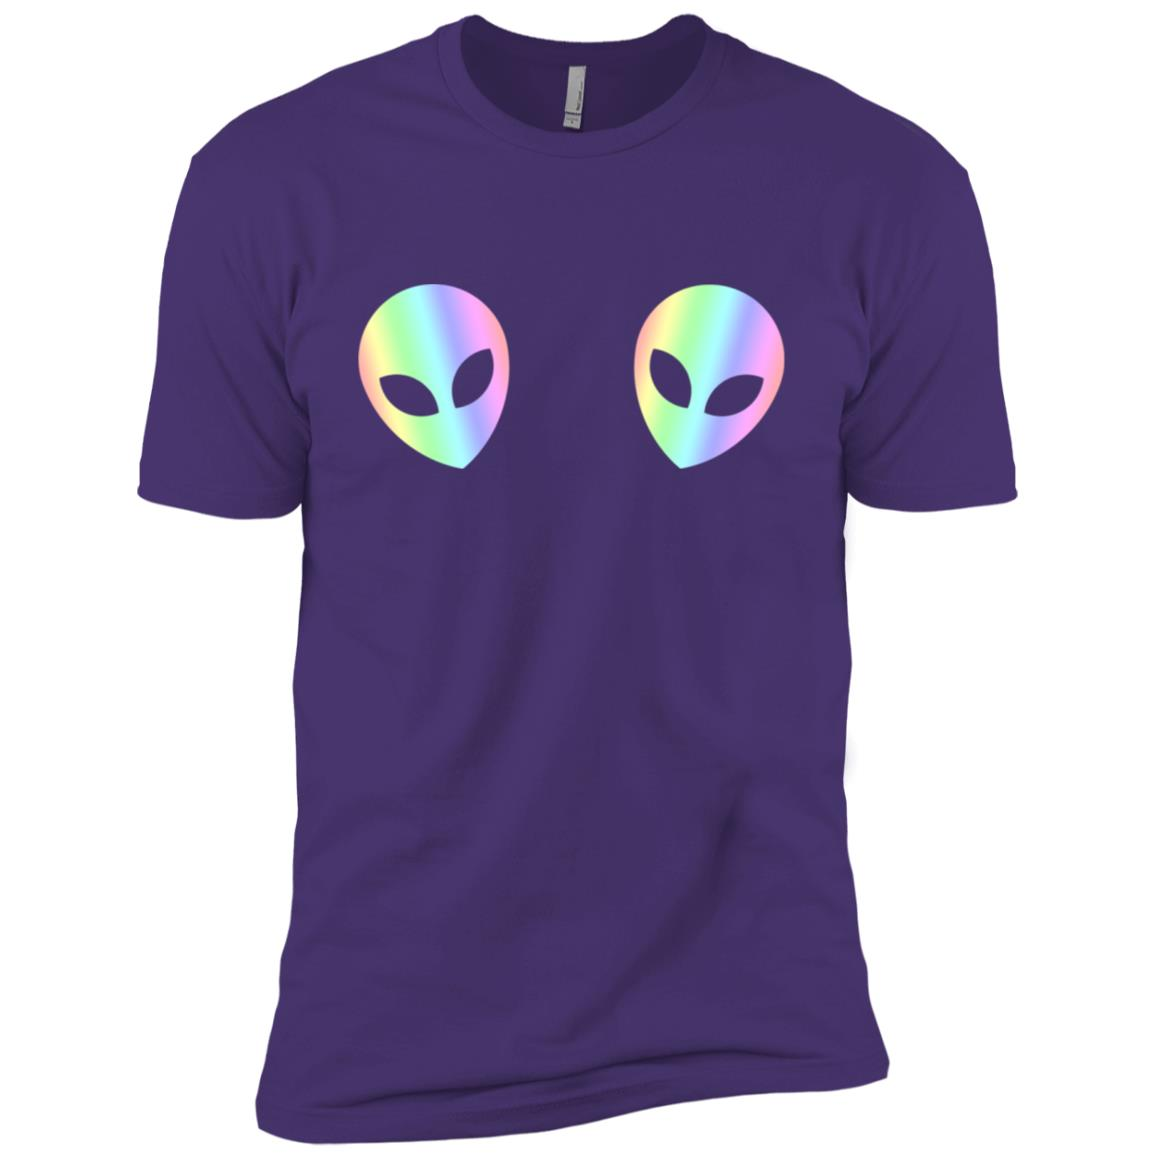 Two Aliens Cool Funny Boobs Bra Top Tee Men Short Sleeve T-Shirt